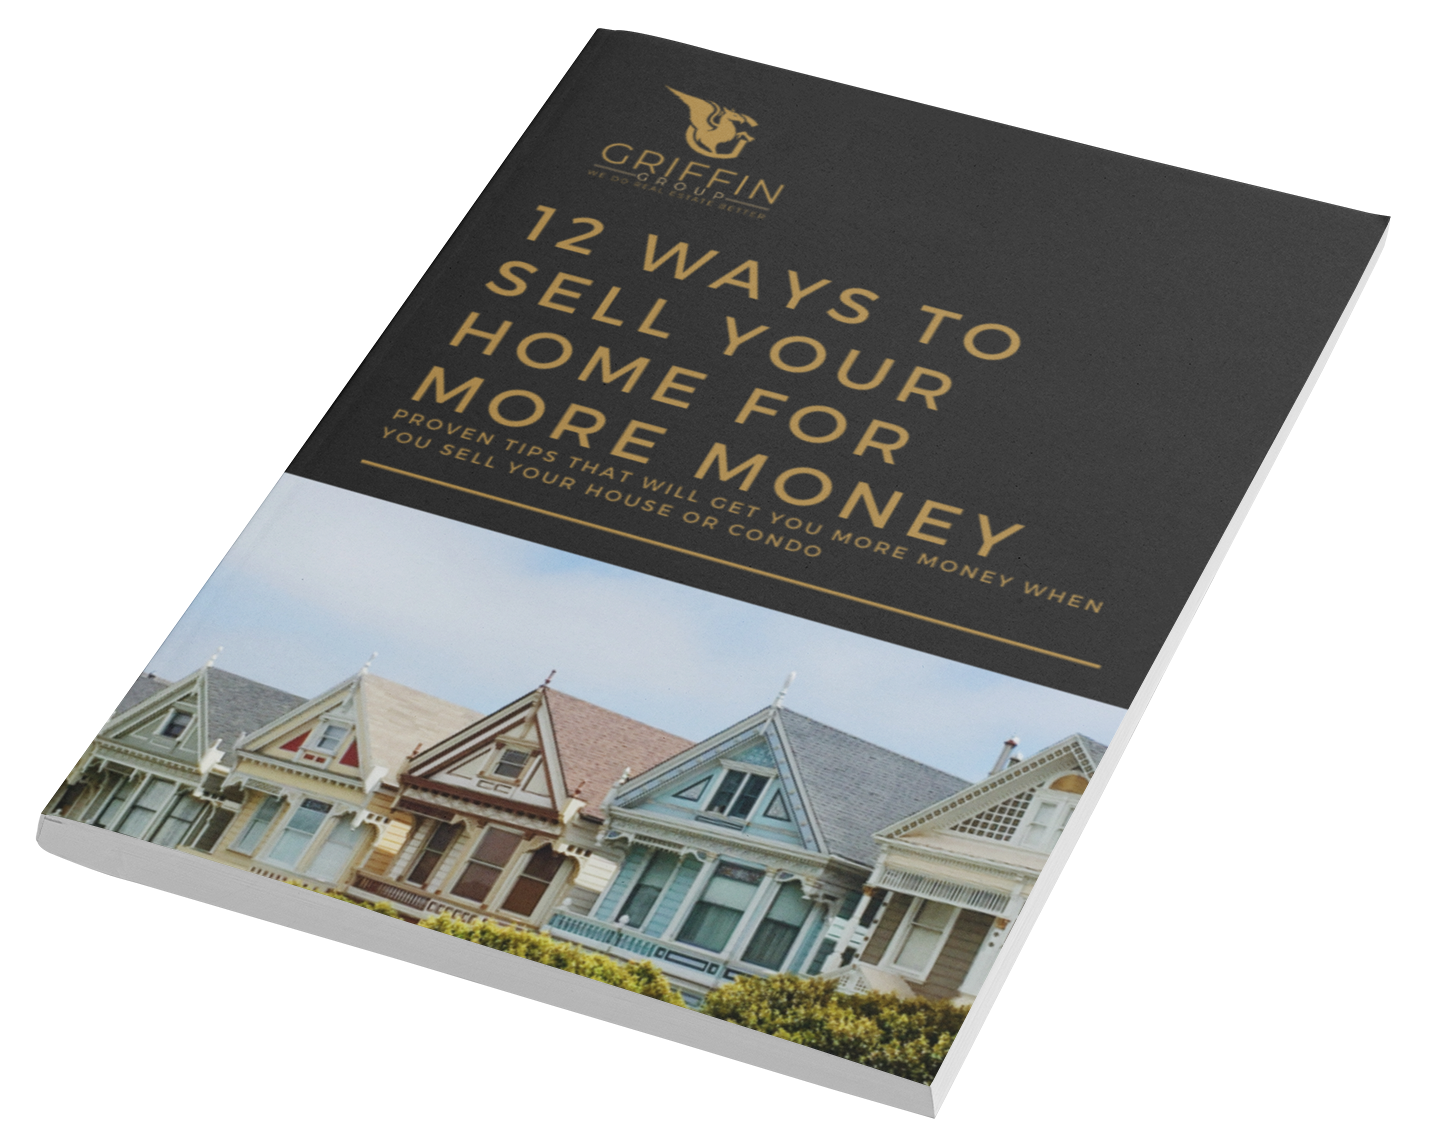 12 ways to sell your home for more money